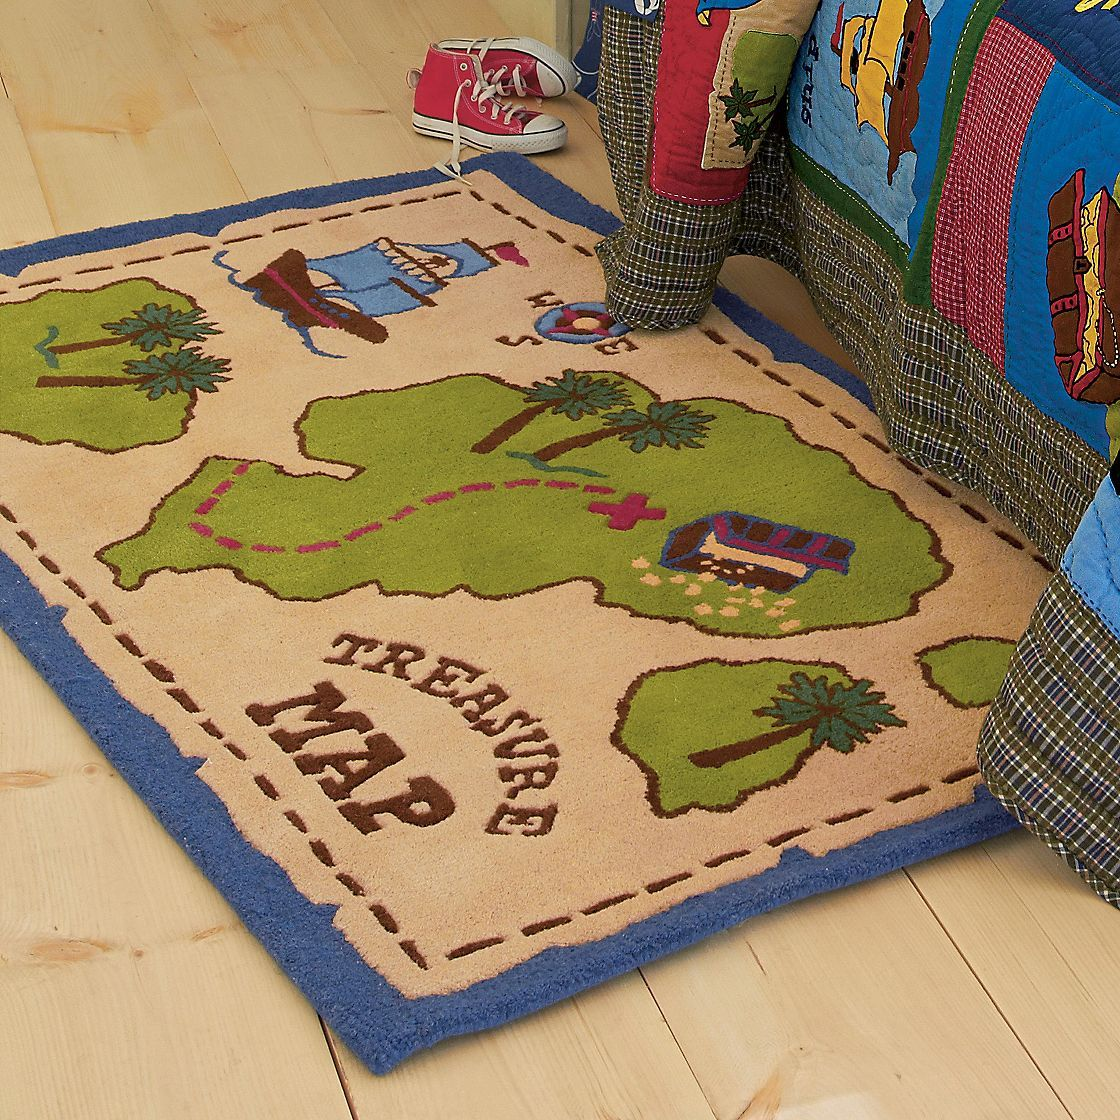 X Marks The Spot Our Treasure Map Kids Rug Transforms